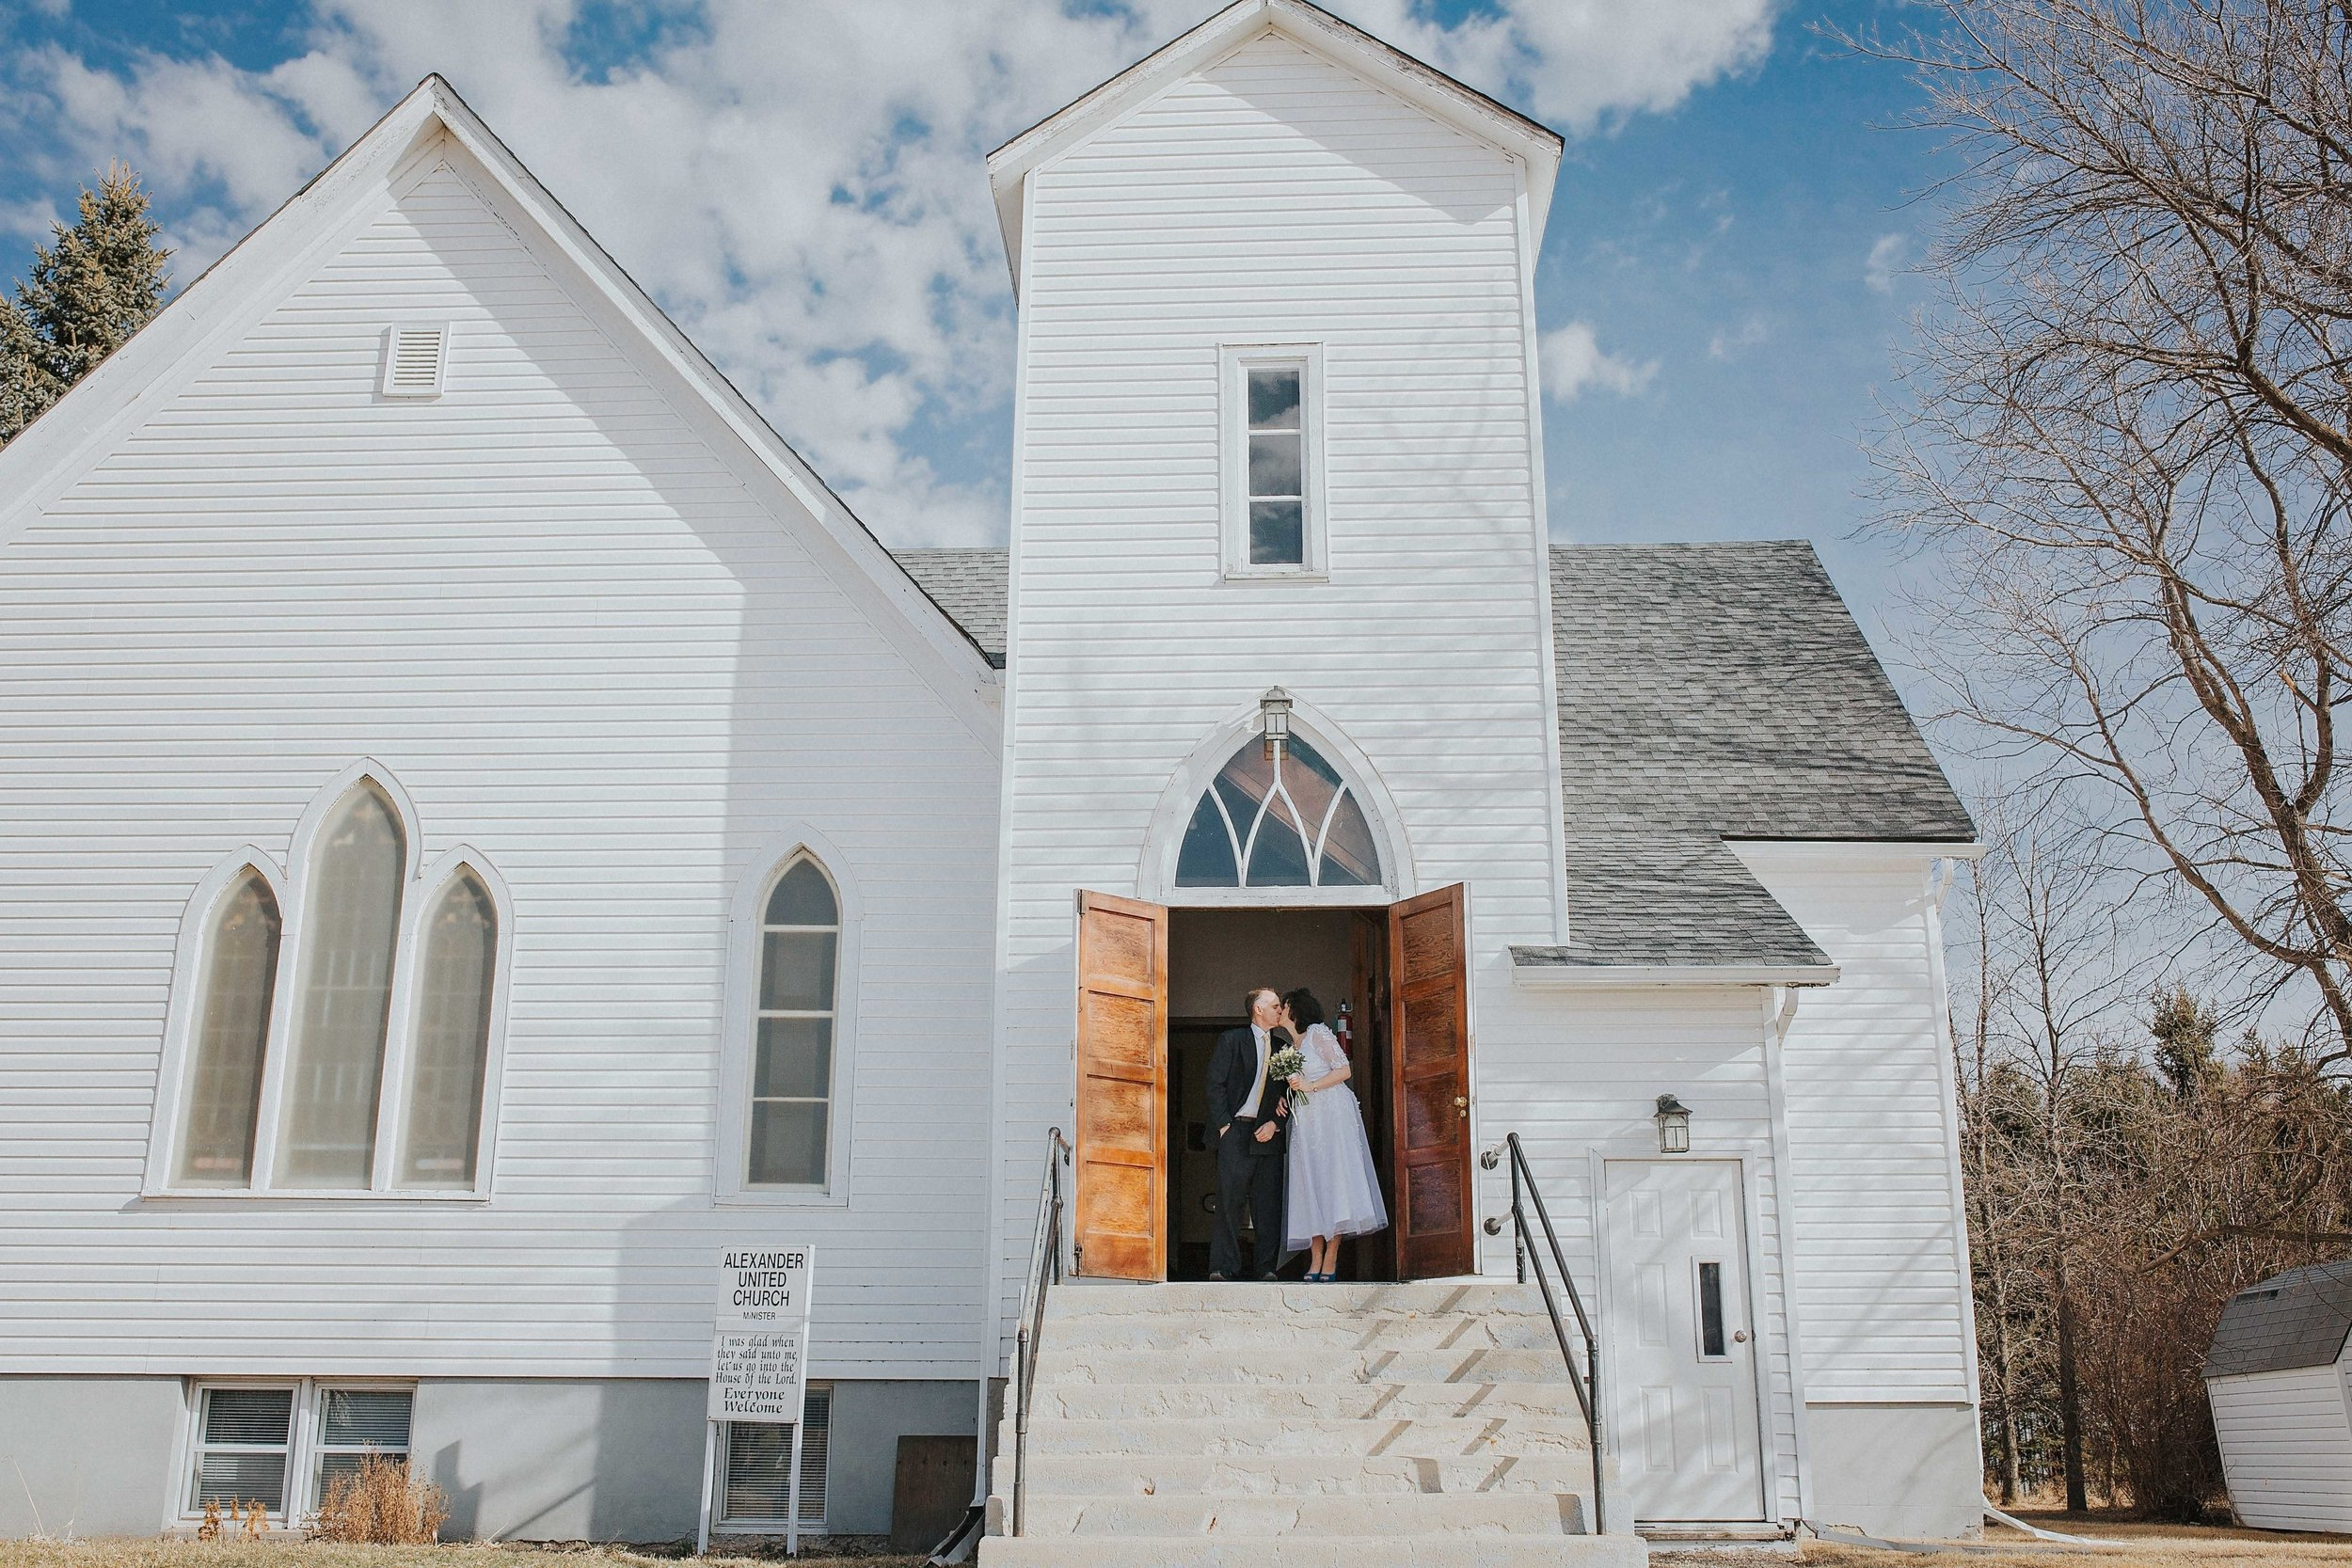 April is always such a beautiful time of the year. Snow is gone, the sun is out, everything is just splendid. Randy + Kristine got married in a very quaint church in Alexander, MB. I am so happy that I got to capture their love on their very special day.